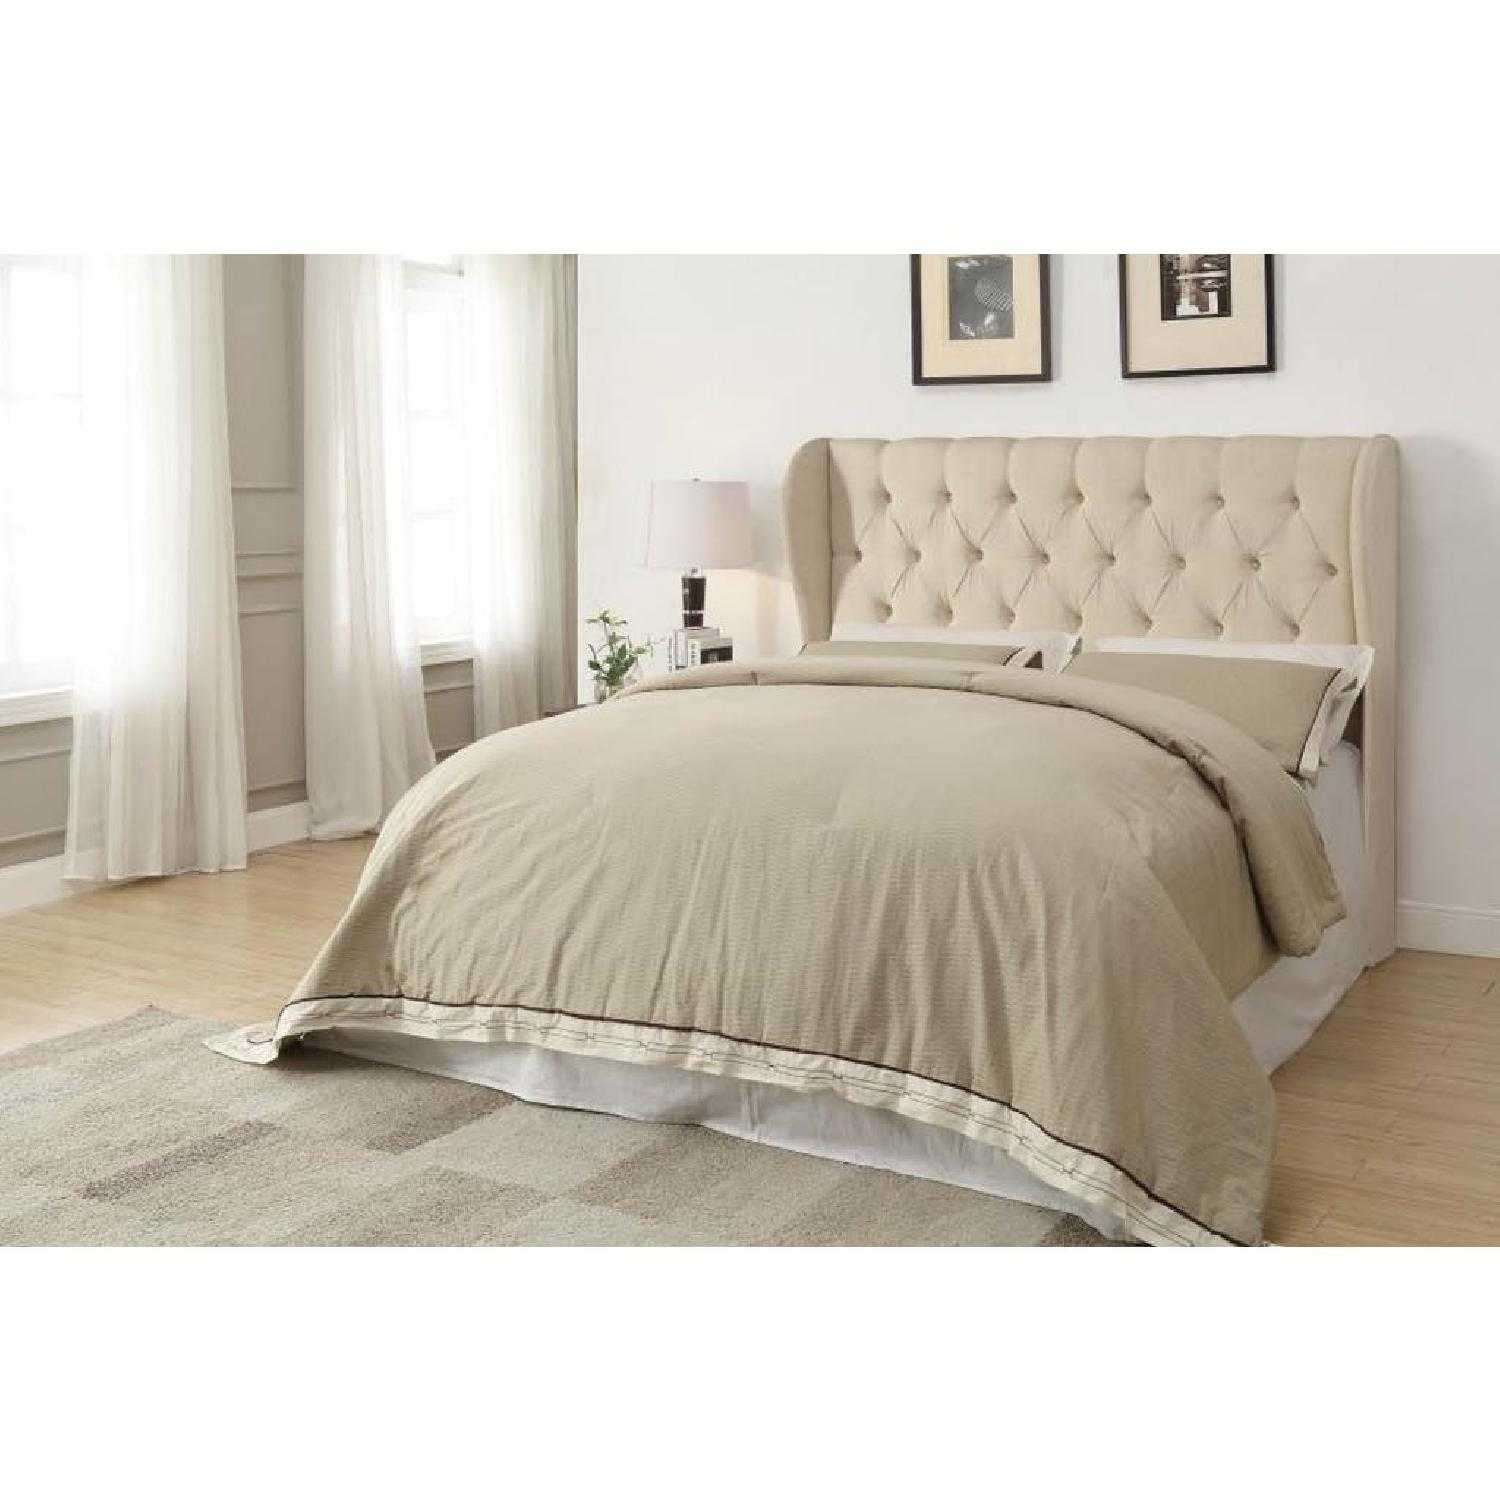 Demi Wing King Button Tufted Headboard in Beige Fabric - image-2